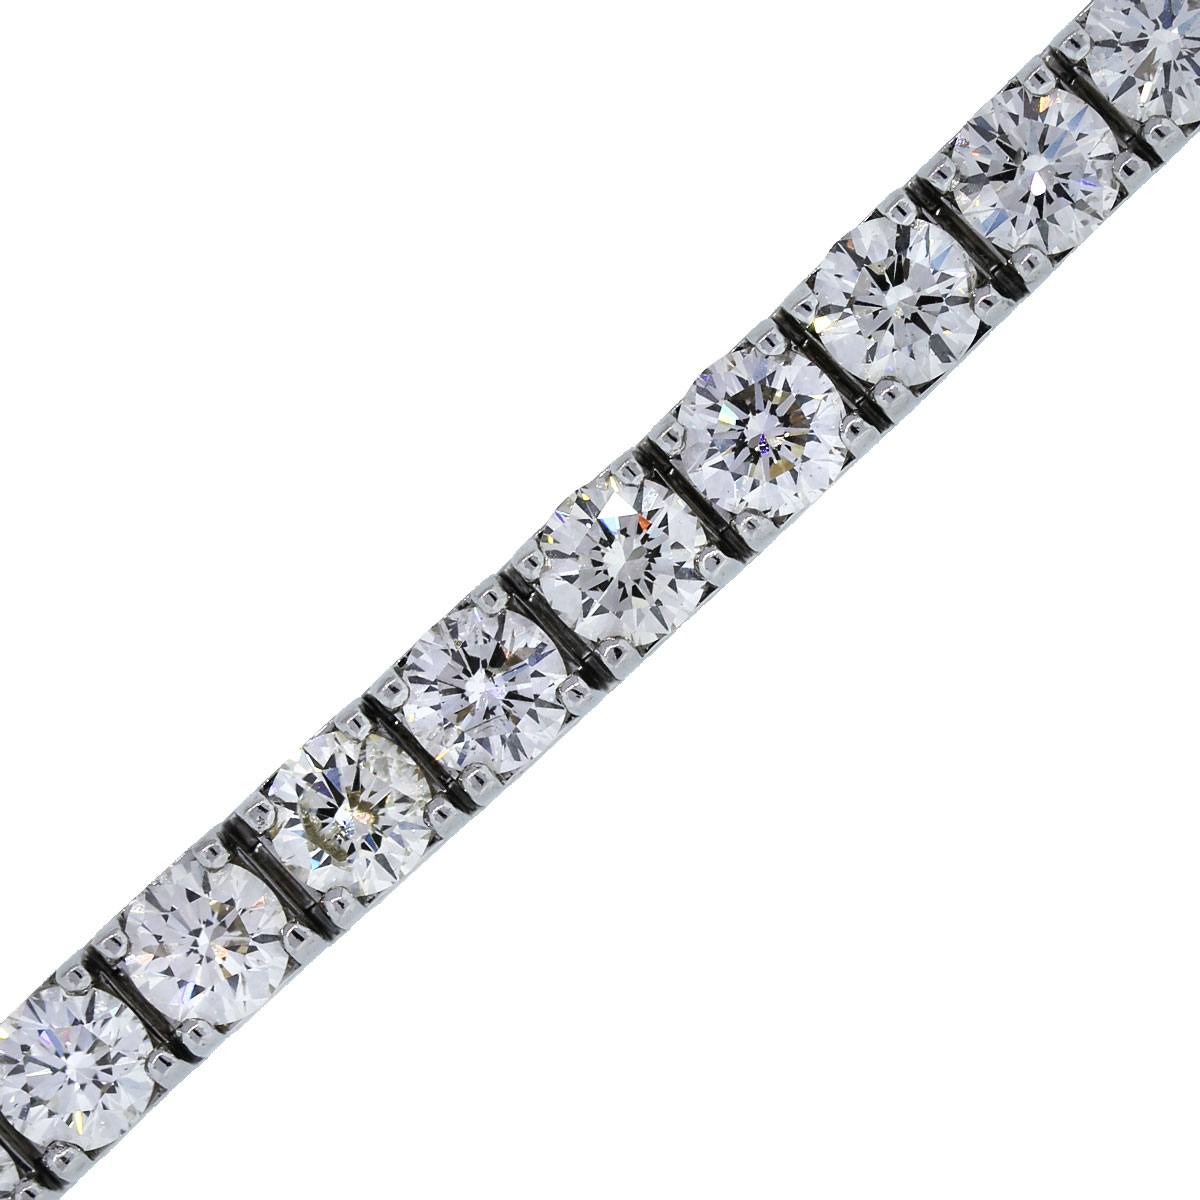 21.78Ctw Diamond Tennis Bracelet